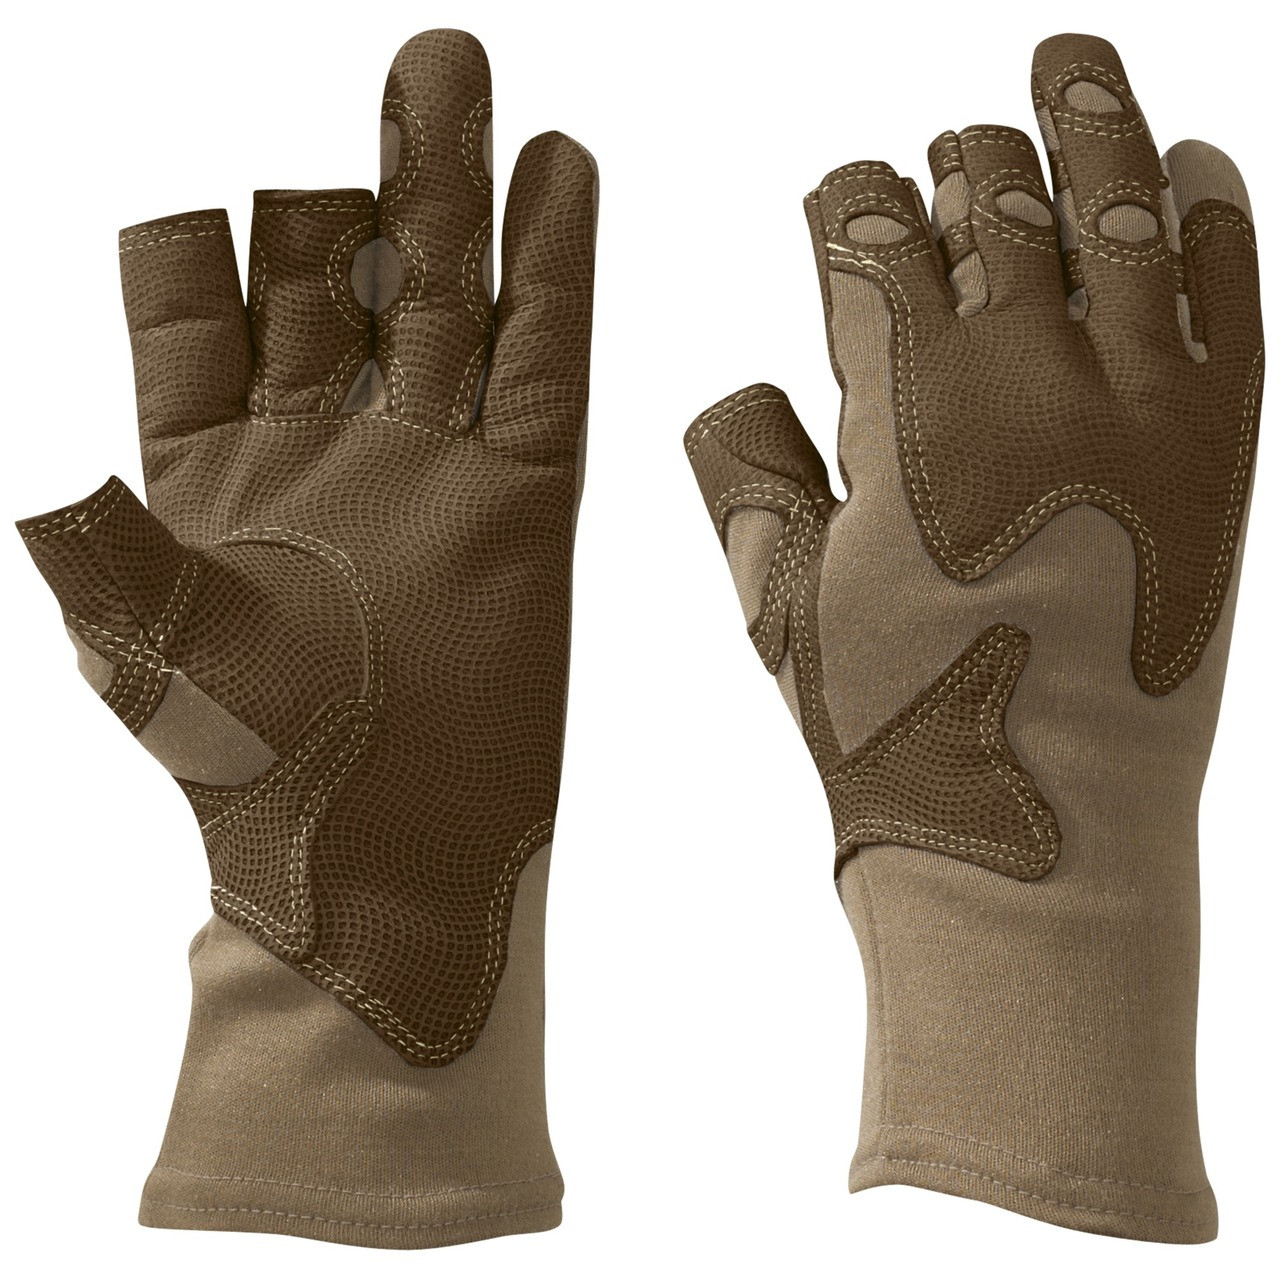 Outdoor Research Overlord Gloves Coyote Brown USA Made